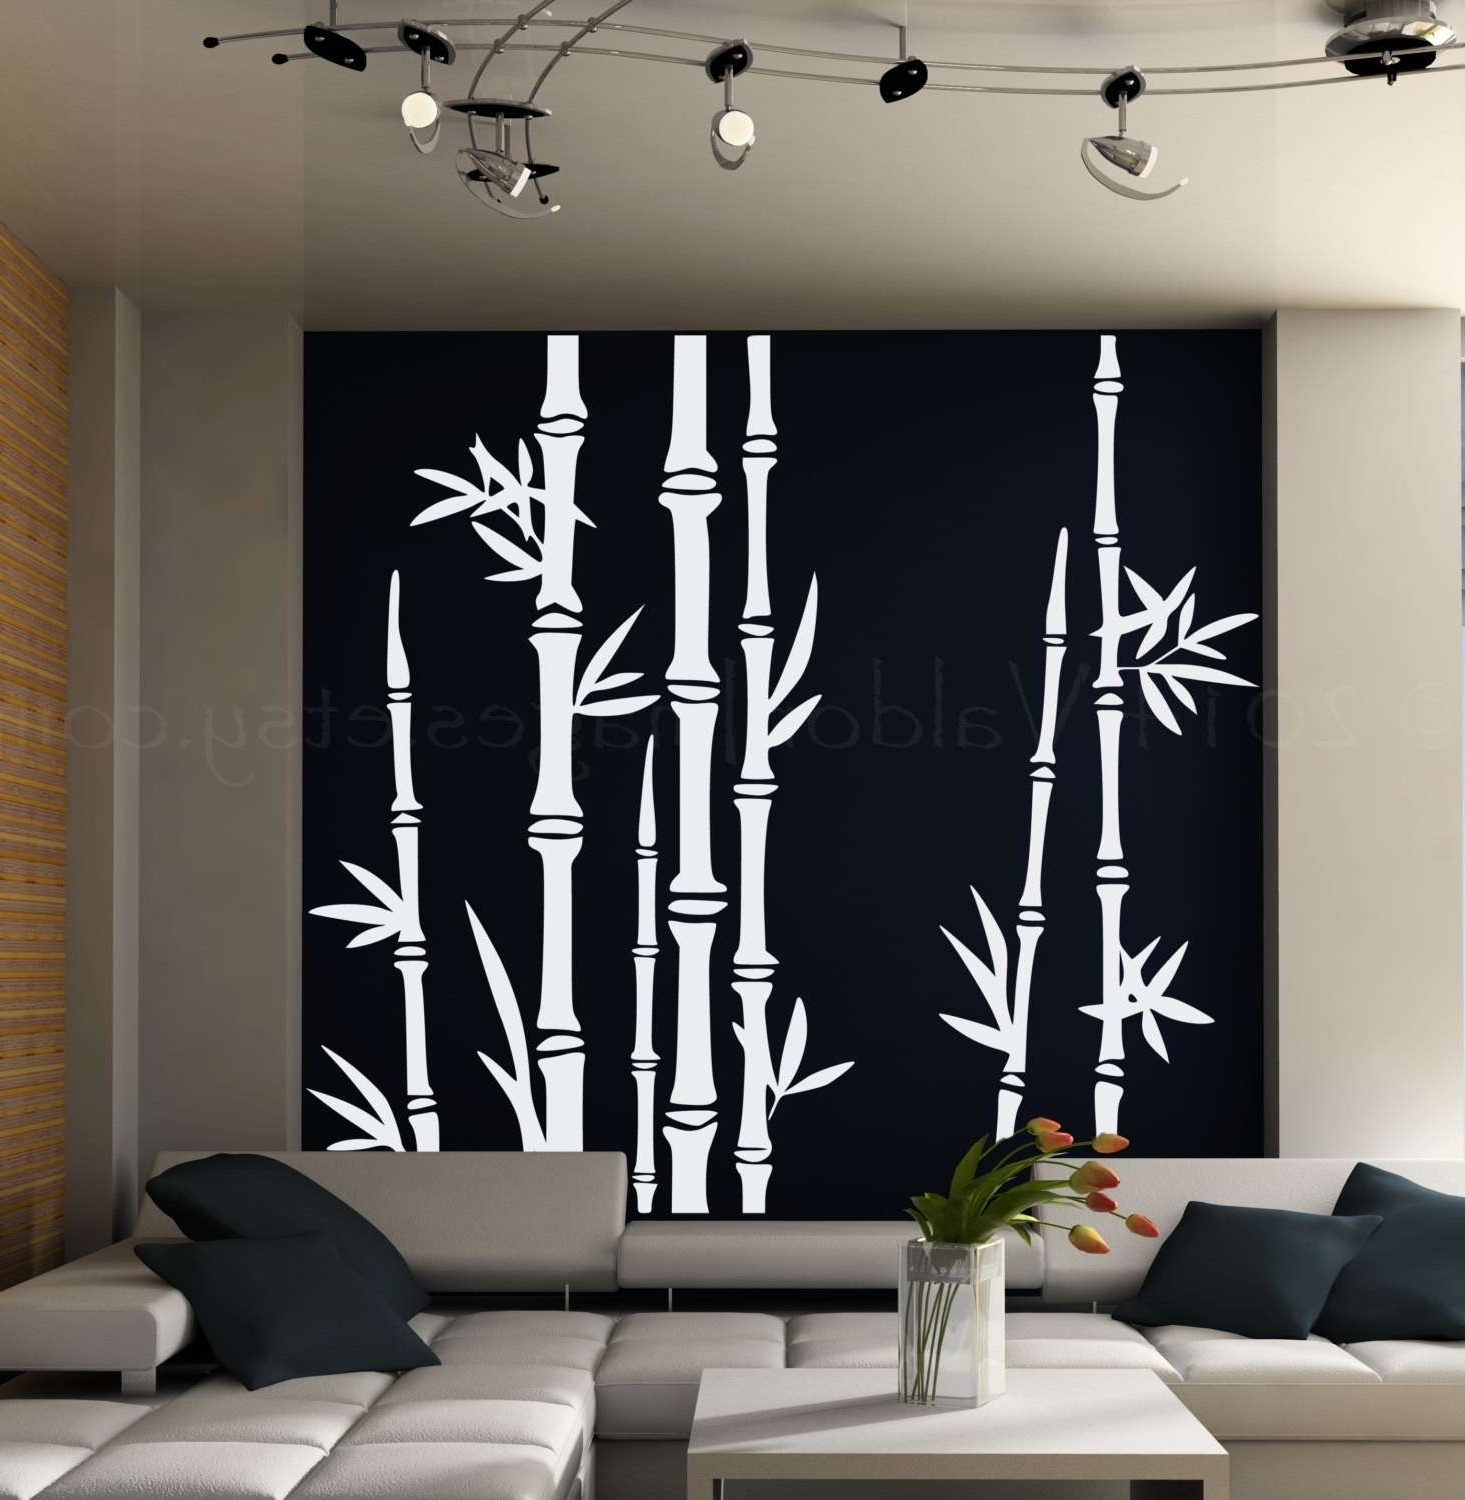 Bamboo Wall Art With Regard To Preferred Bamboo Wall Art New Bamboo Wall Decal Asian Art Wall Stickers Lush (View 11 of 20)